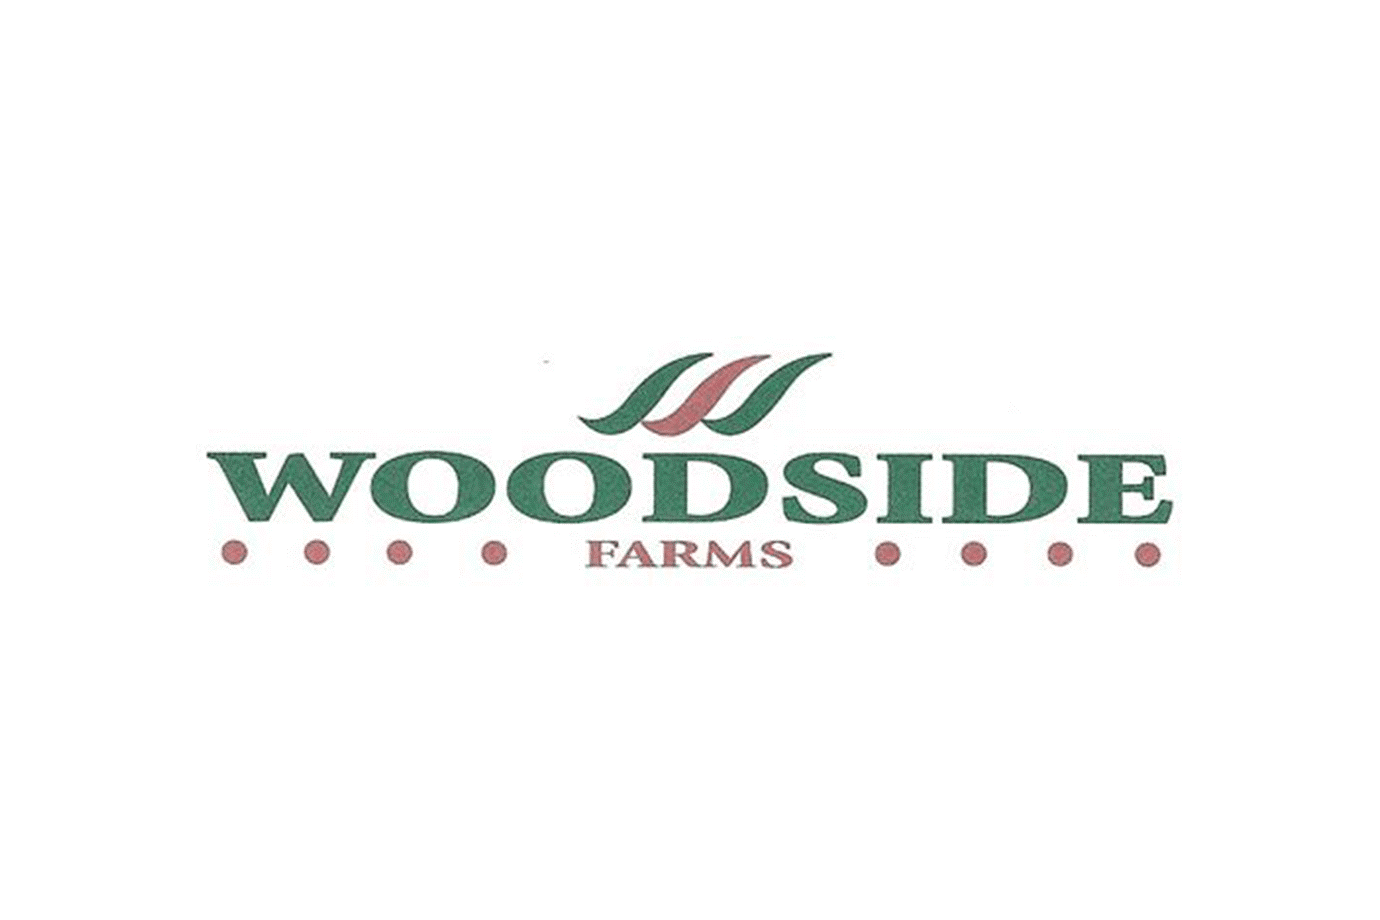 Woodside Farms Limited